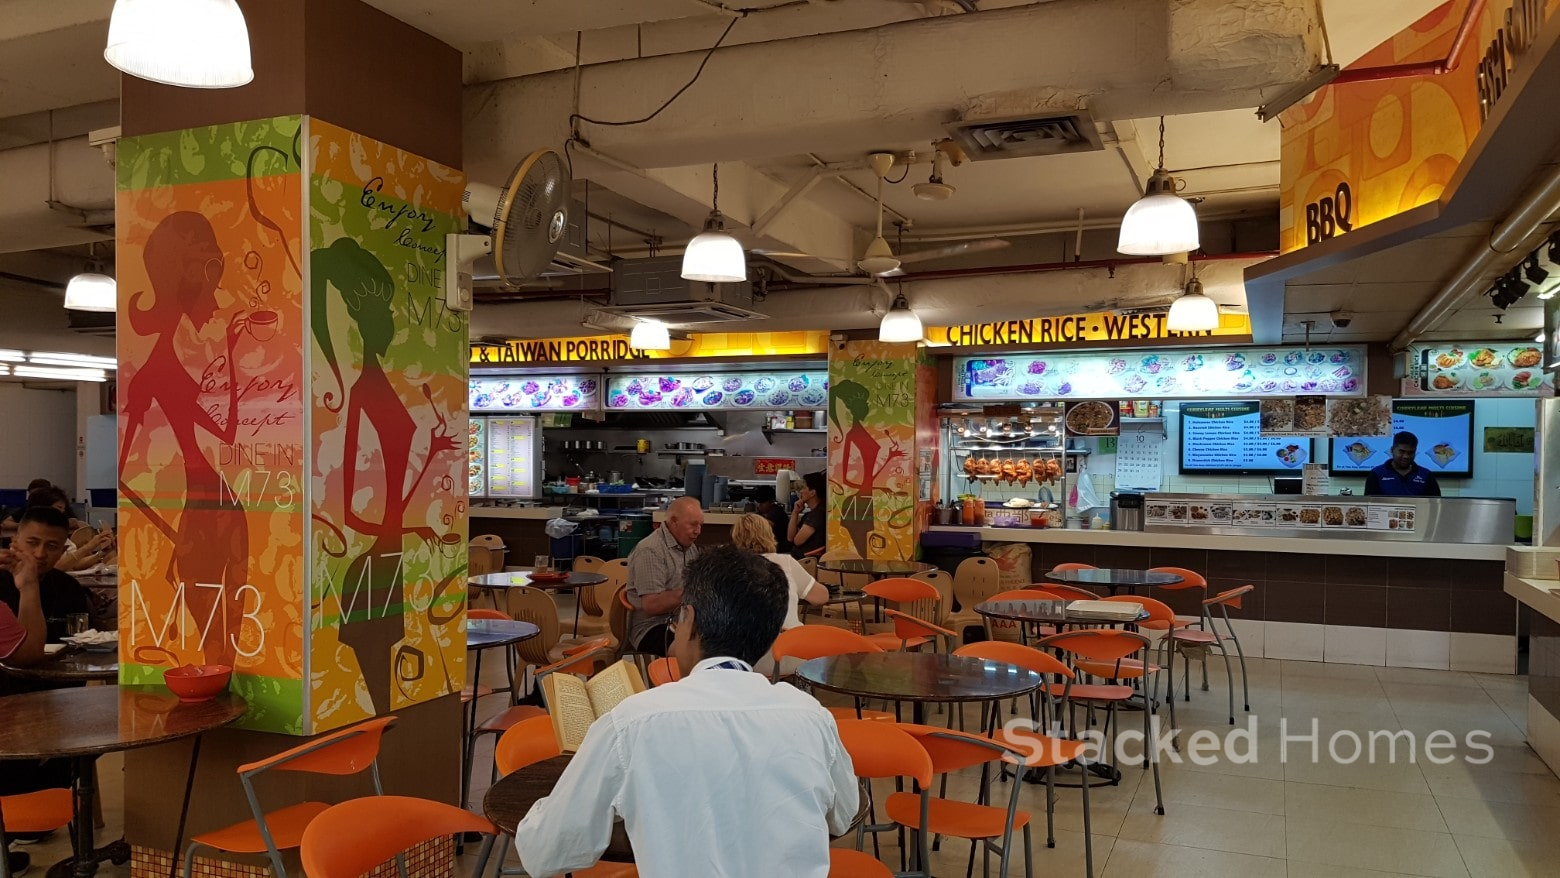 M73 Food Court Orchard Towers